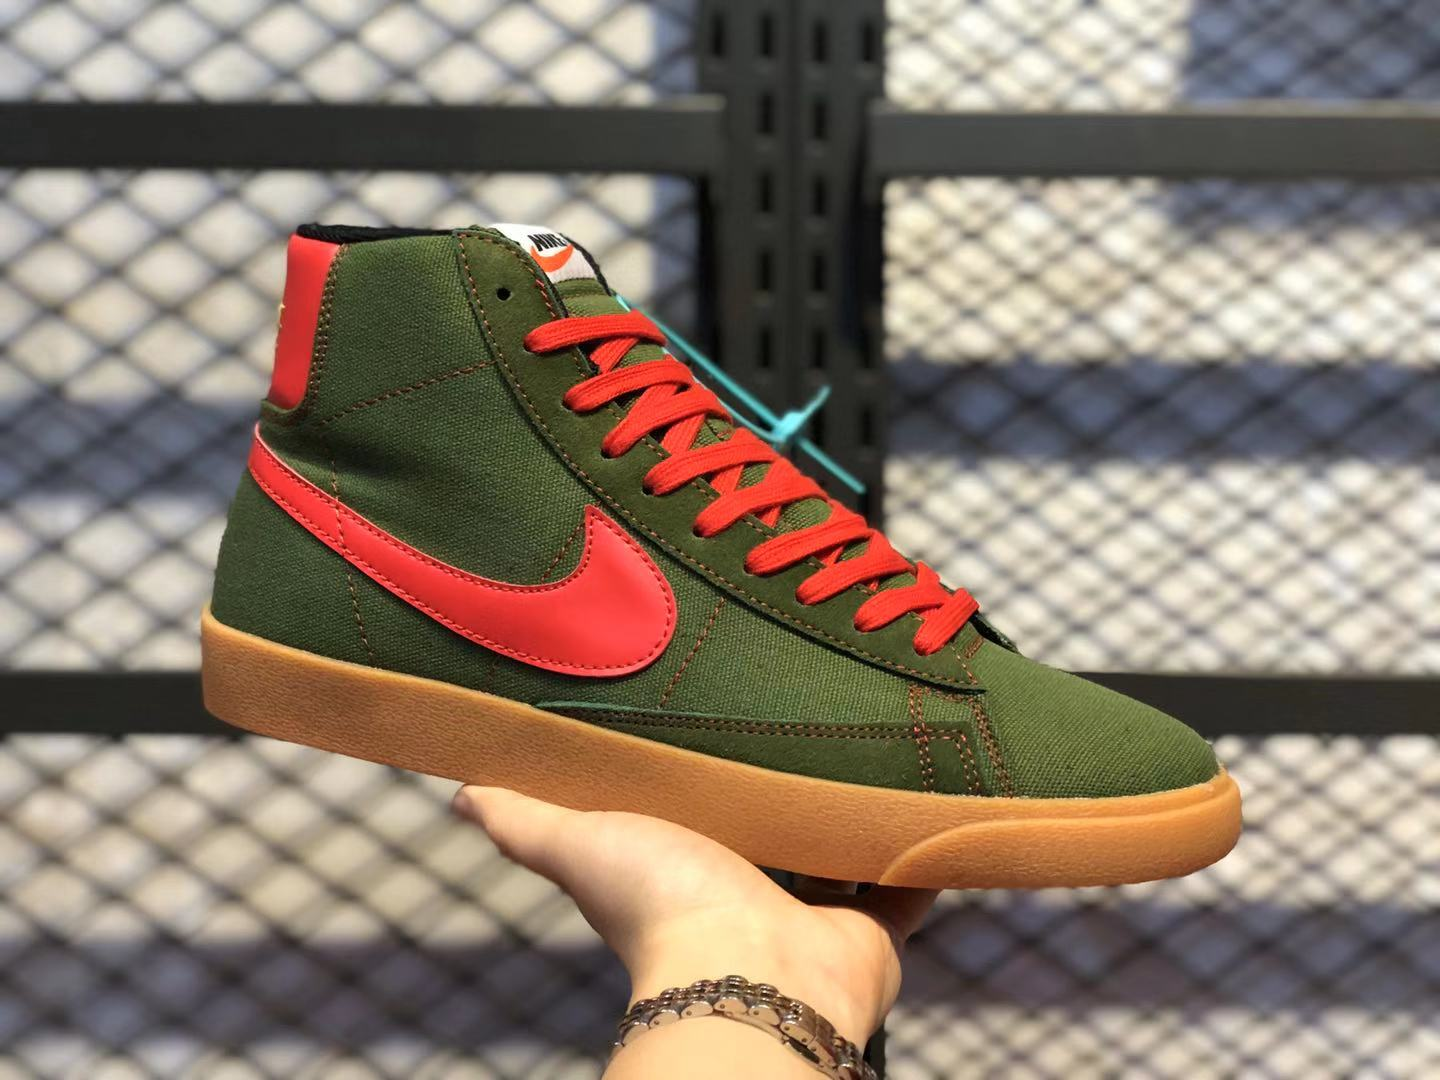 2020 Buy Nike SB Zoom Blazer Mid QS Army Green/Red JL6806-400 Casual Sneakers